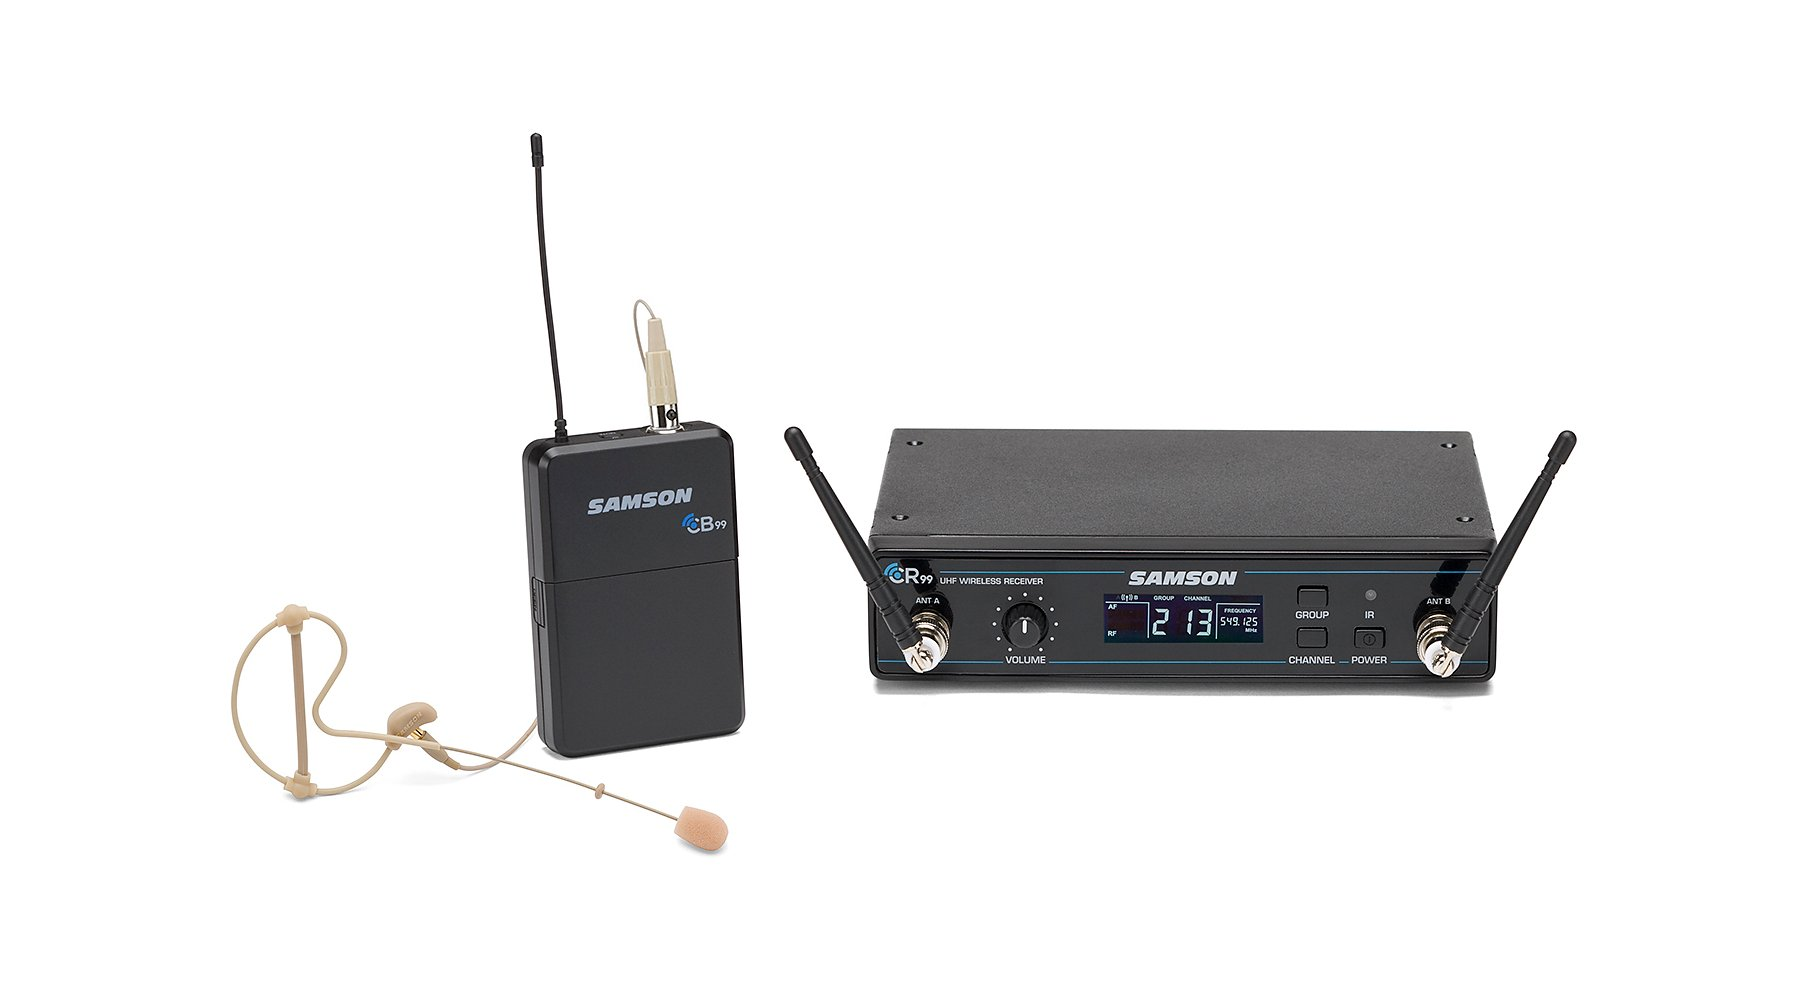 Concert 99 Wireless Headworn System, D Band Model 542 - 566 MHz